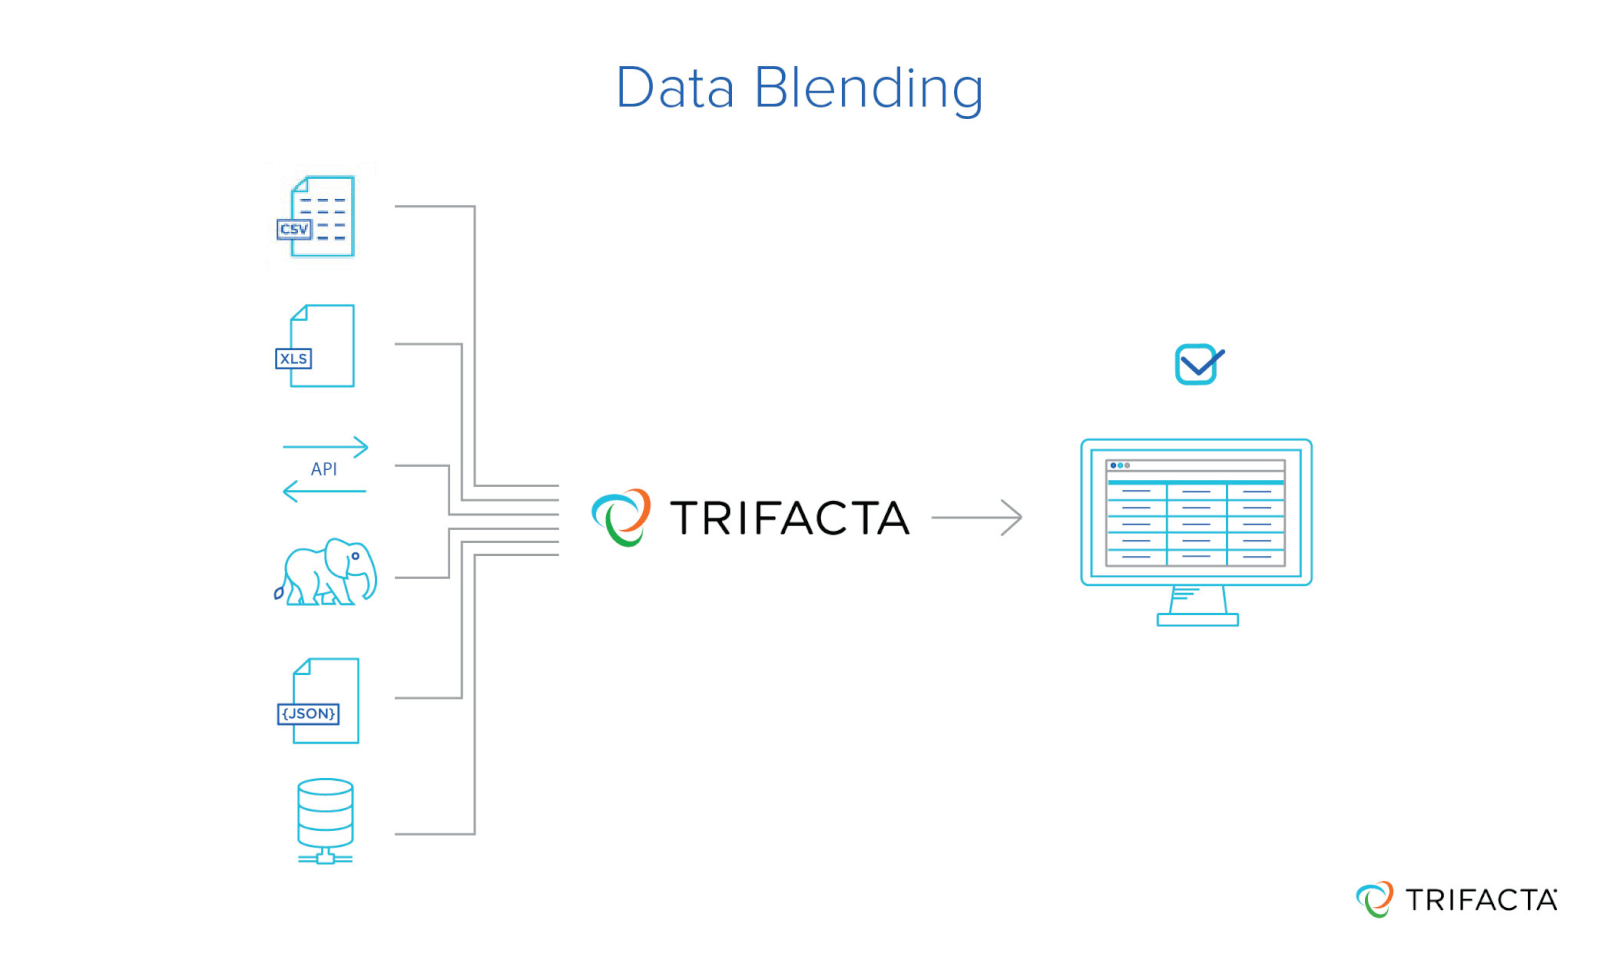 Data blending combines data from different sources like JSON, CSV and XLS into a consistent format for analysis